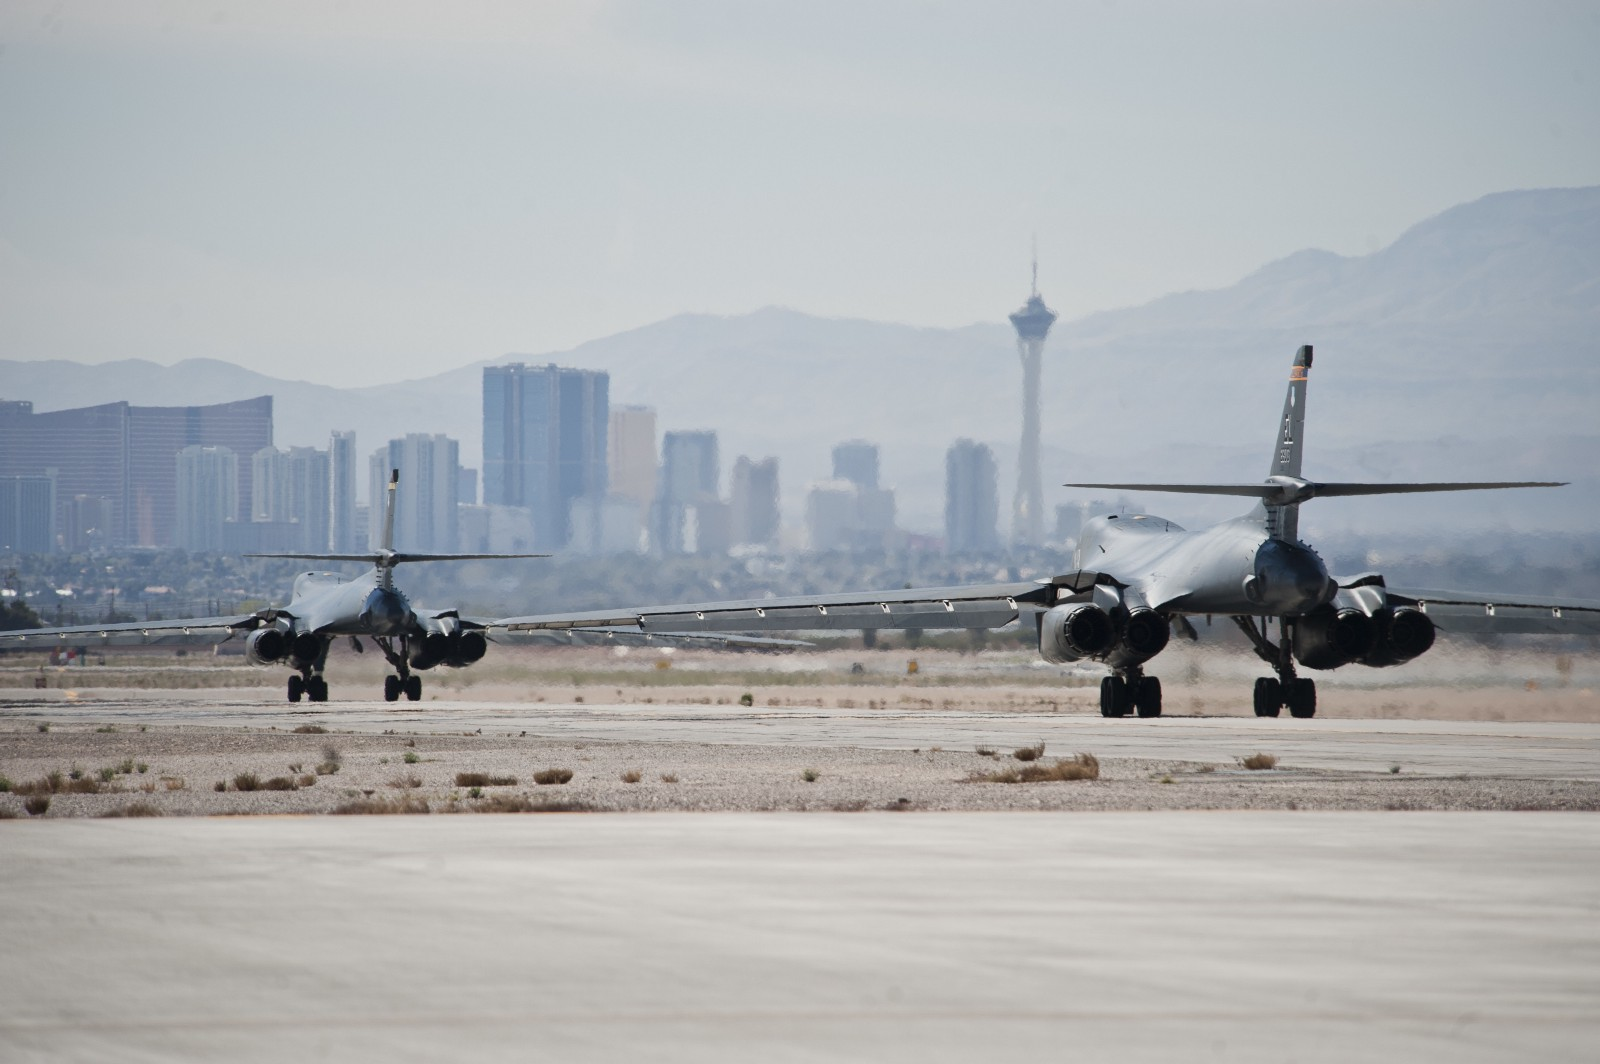 Two B-1B Lancers assigned to the 37th Bomb Squadron, Ellsworth Air Force Base, S.D., taxi during Red Flag 15-2 at Nellis AFB, Nev., March 10, 2015. Red Flag provides a series of intense air-to-air scenarios for aircrew and ground personnel to increase their combat readiness and effectiveness for future real-world operations. (U.S. Air Force photo by Staff Sgt. Siuta B. Ika)